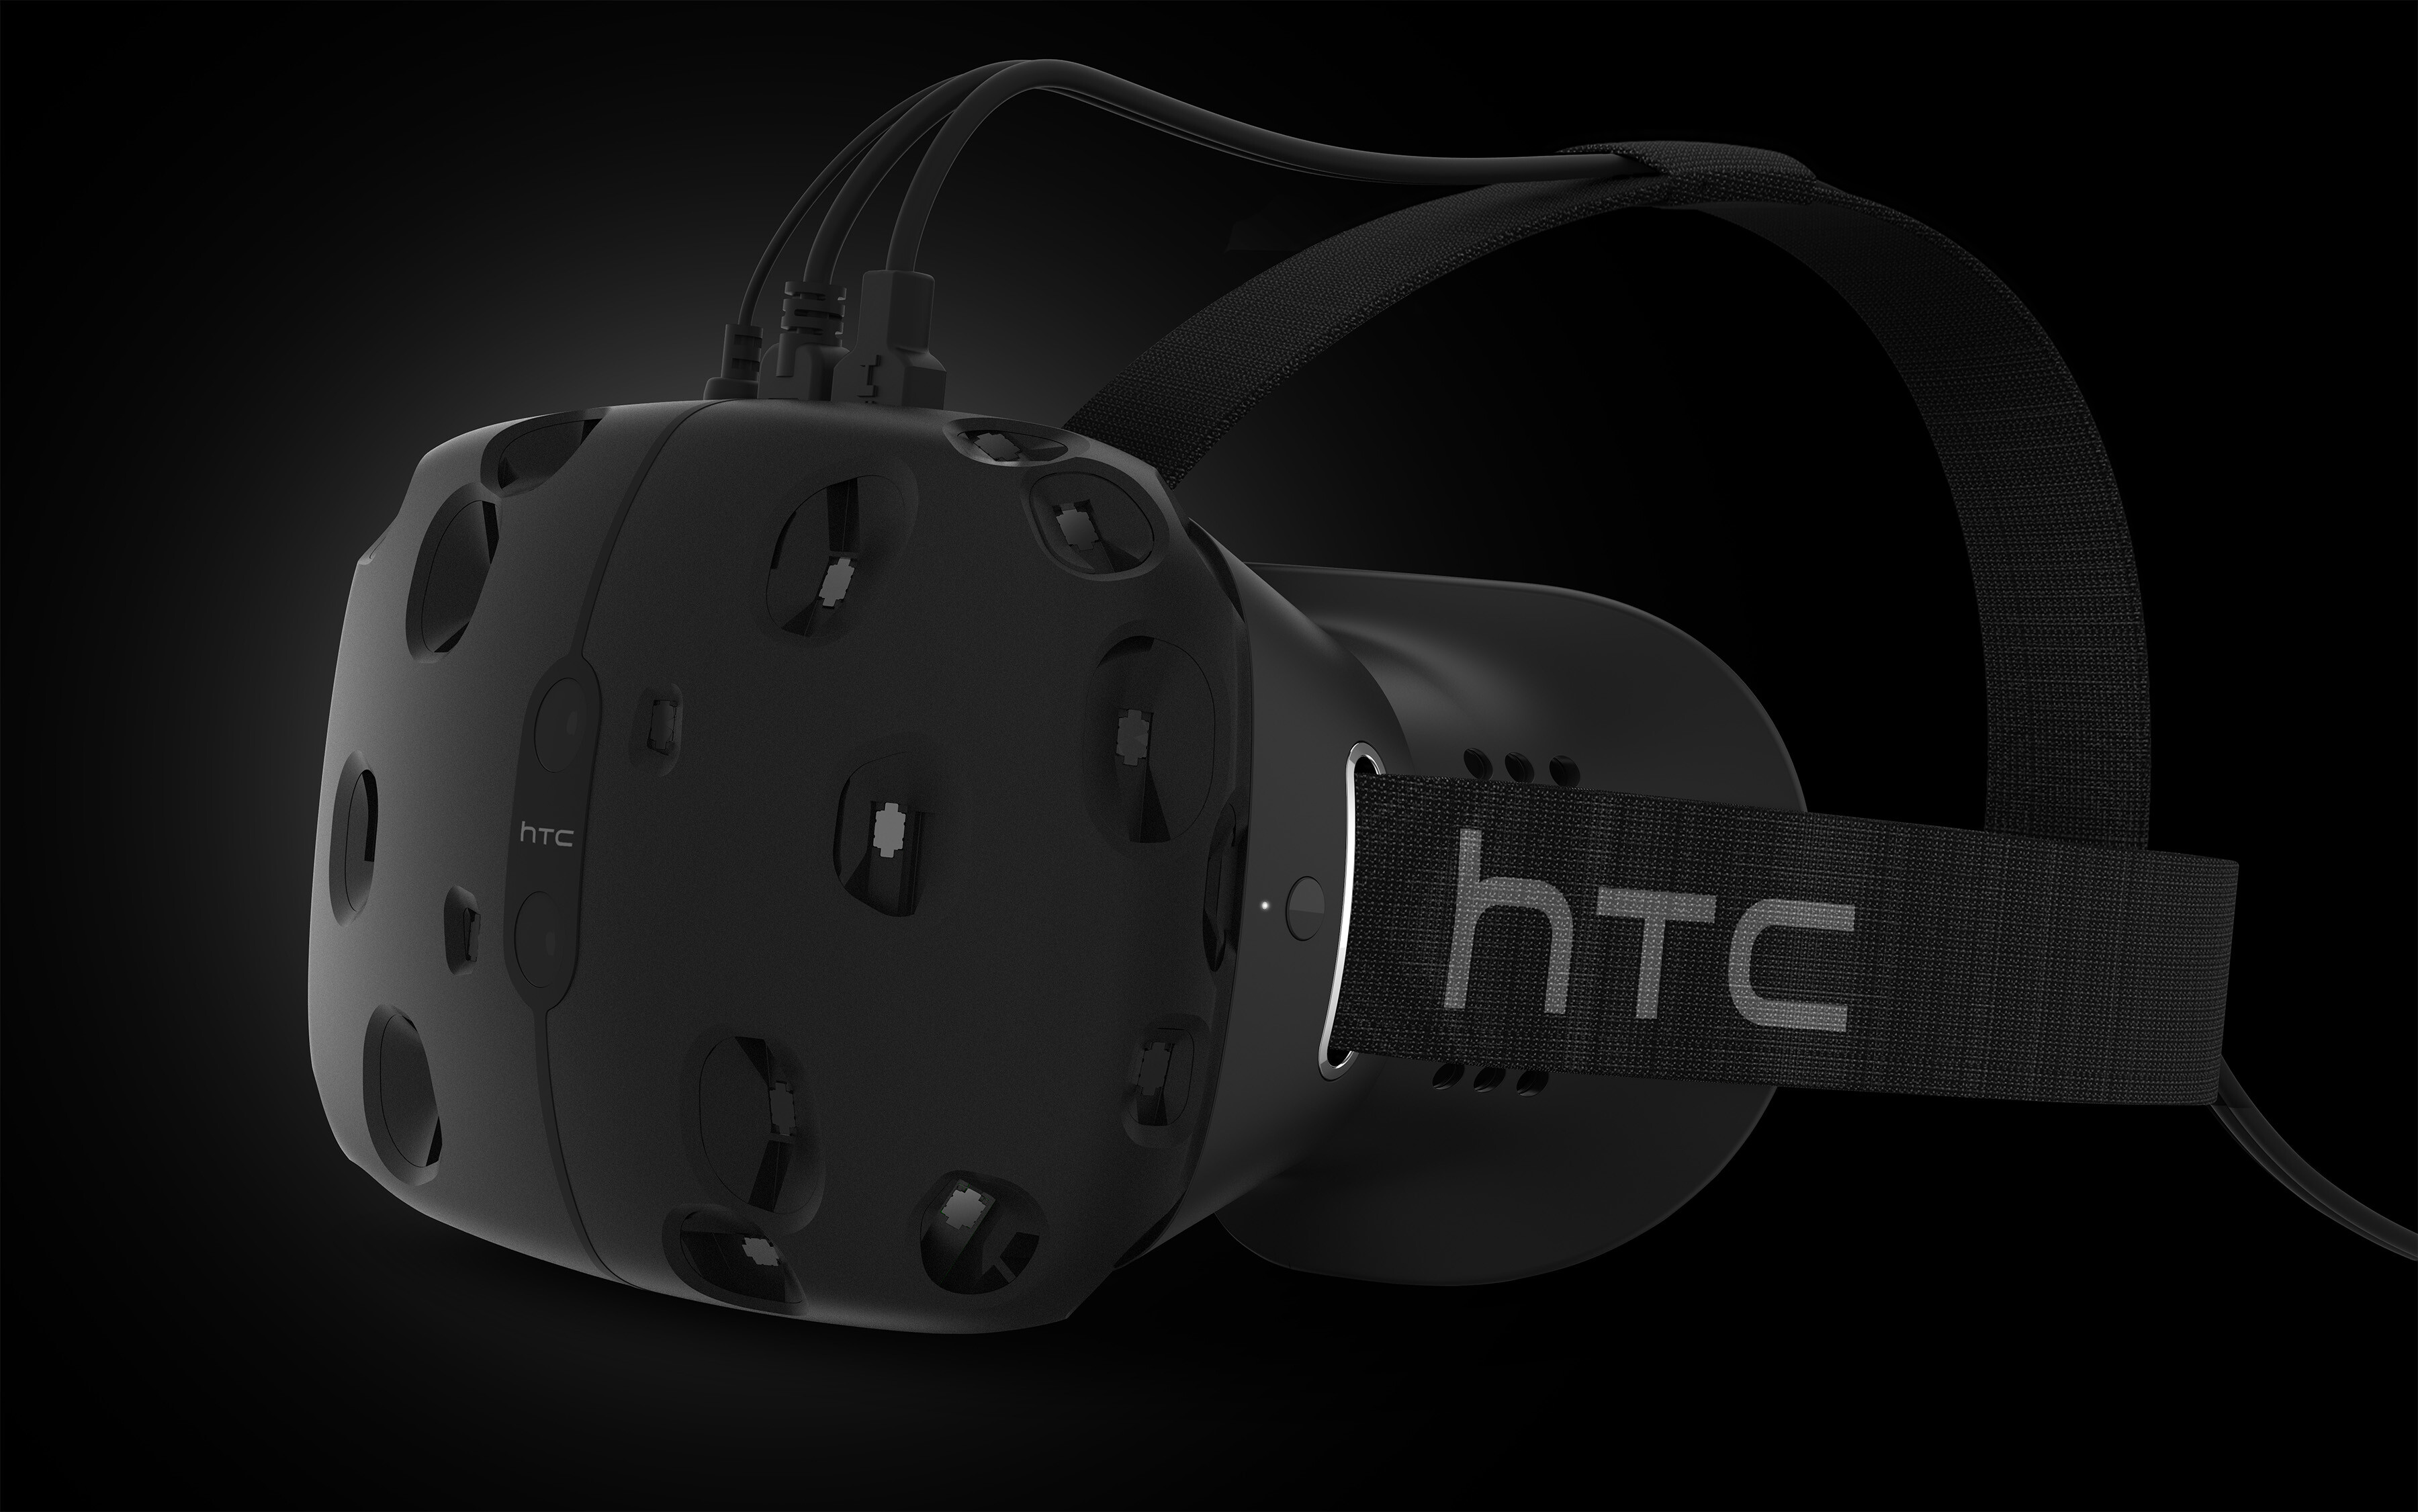 http://i-cdn.phonearena.com/images/articles/170437-image/HTC-Vive.jpg